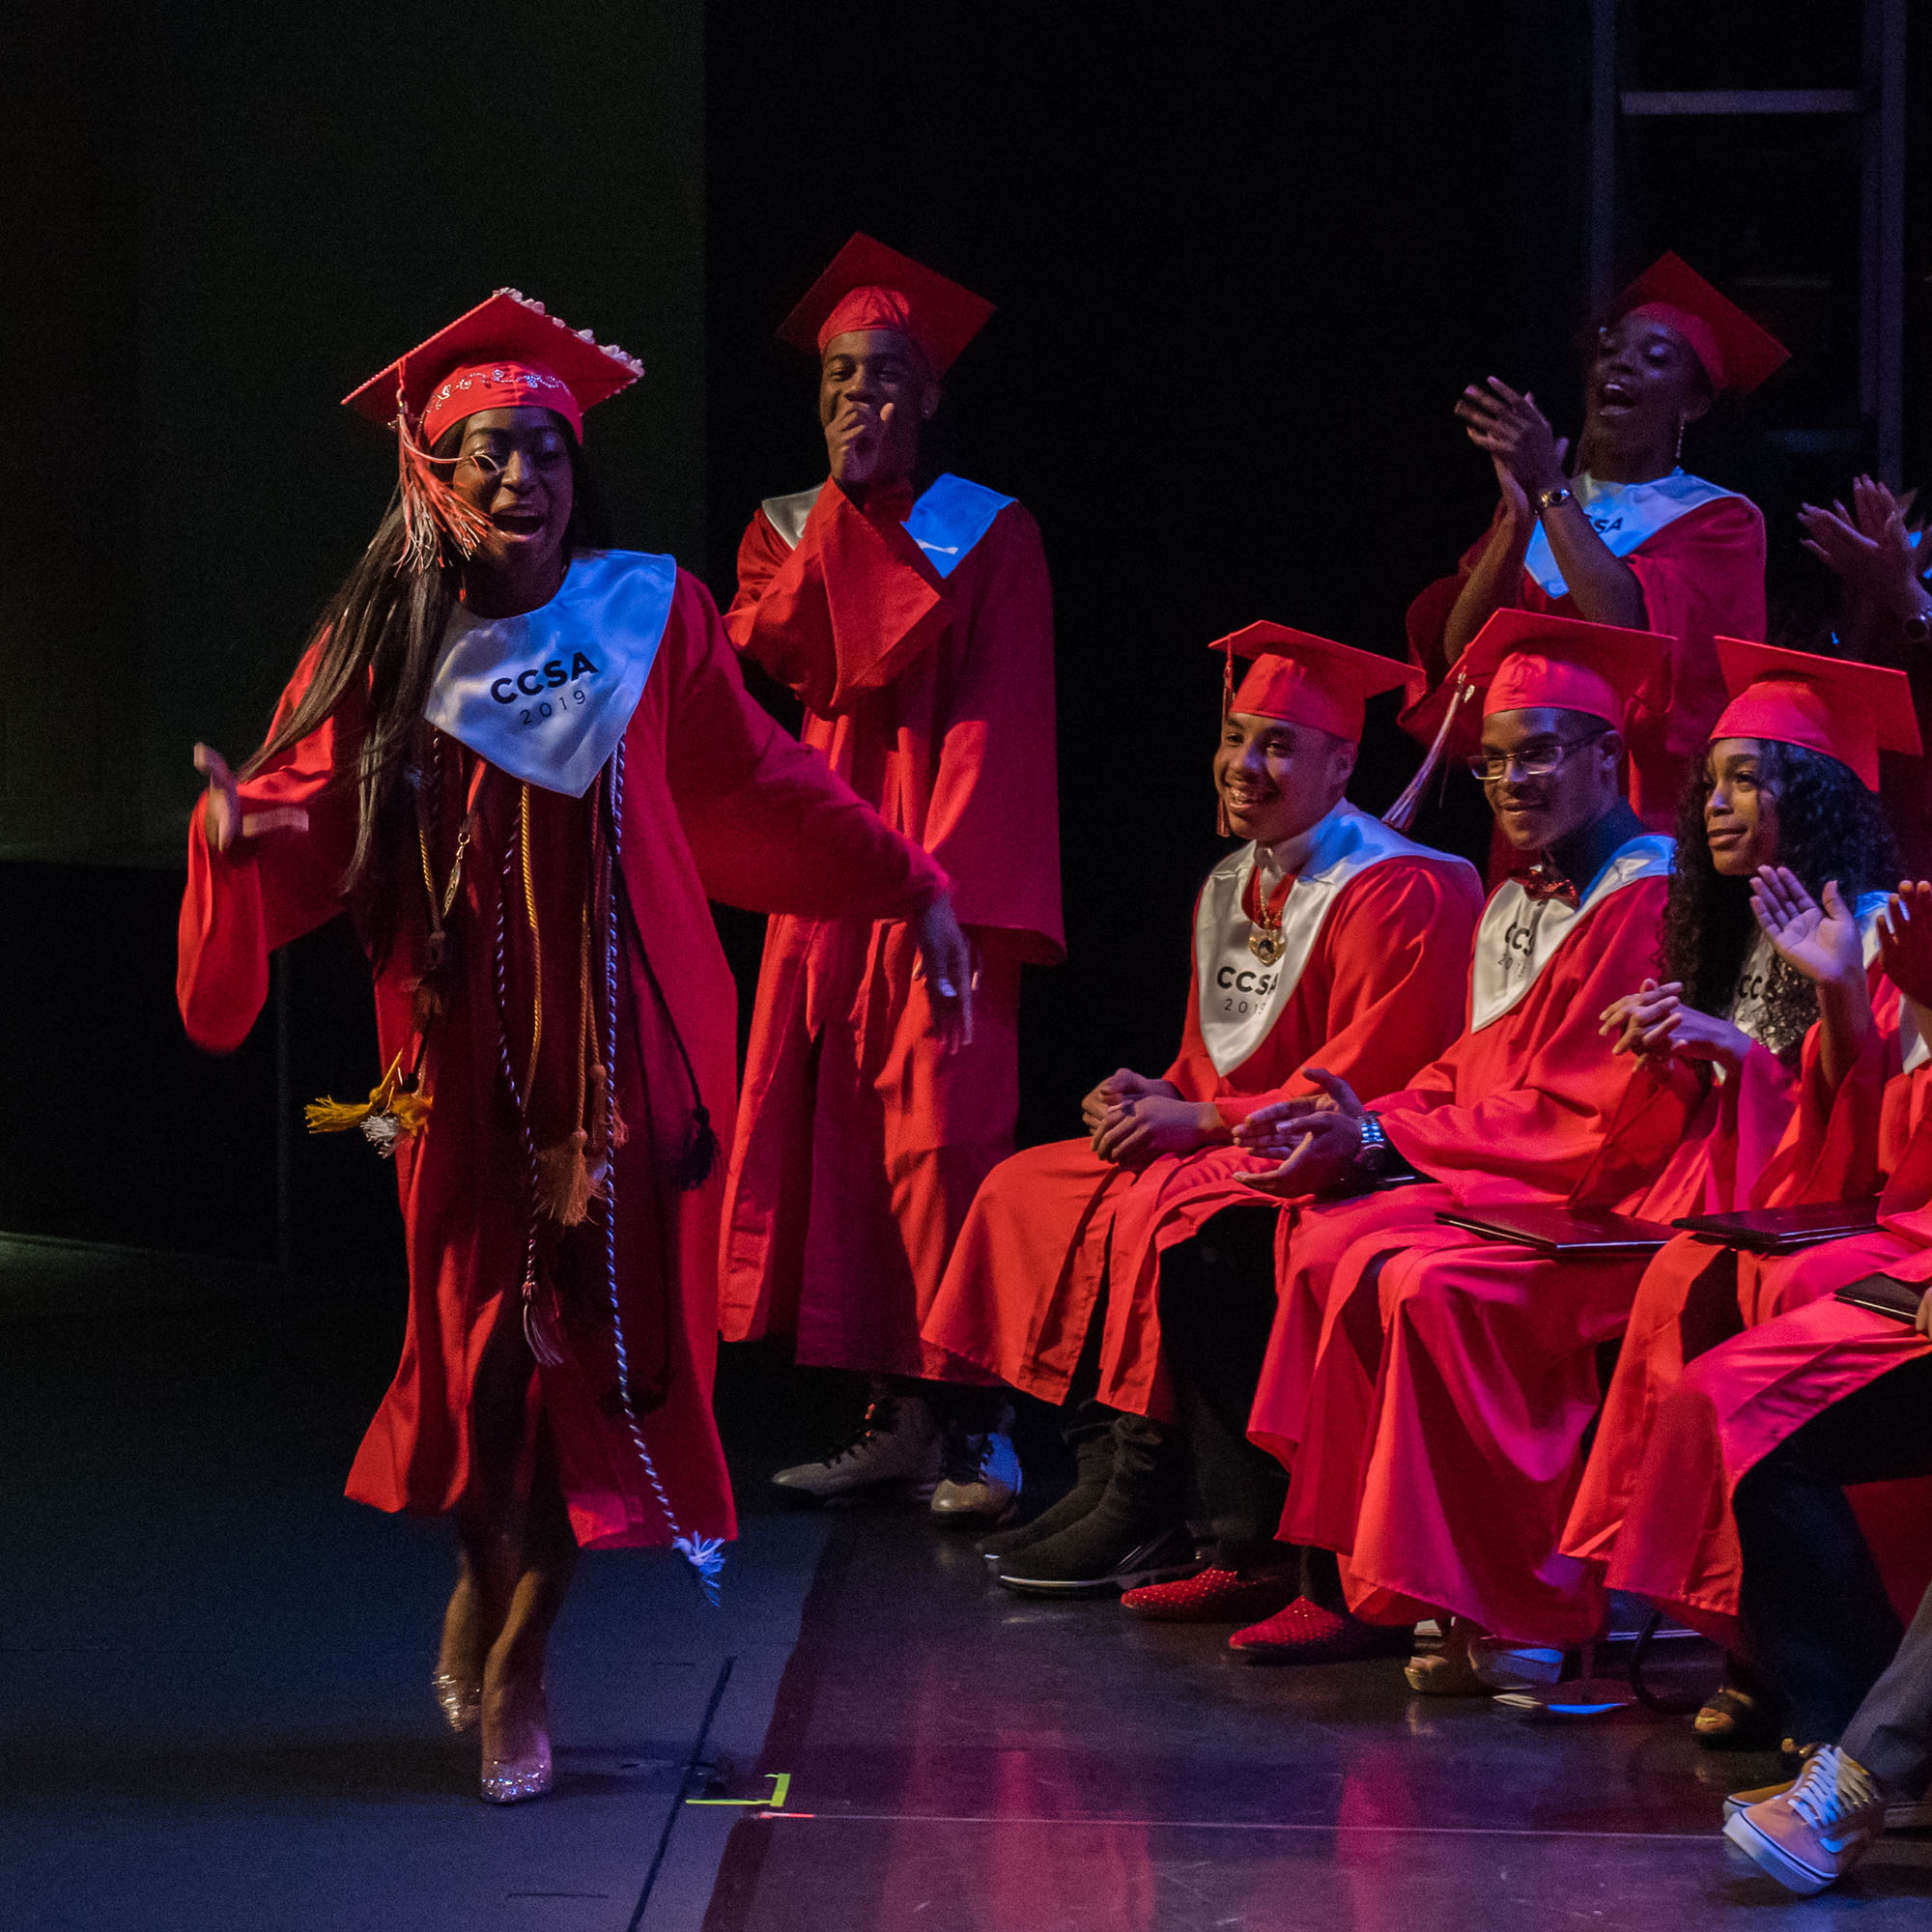 CCSA Class of 2019 Valedictorian Sierra Le'Bue-Richardson joyfully makes her way to the dais at Lang Performing Arts Center. She will study actuarial science at Morgan State University on a partial scholarship.